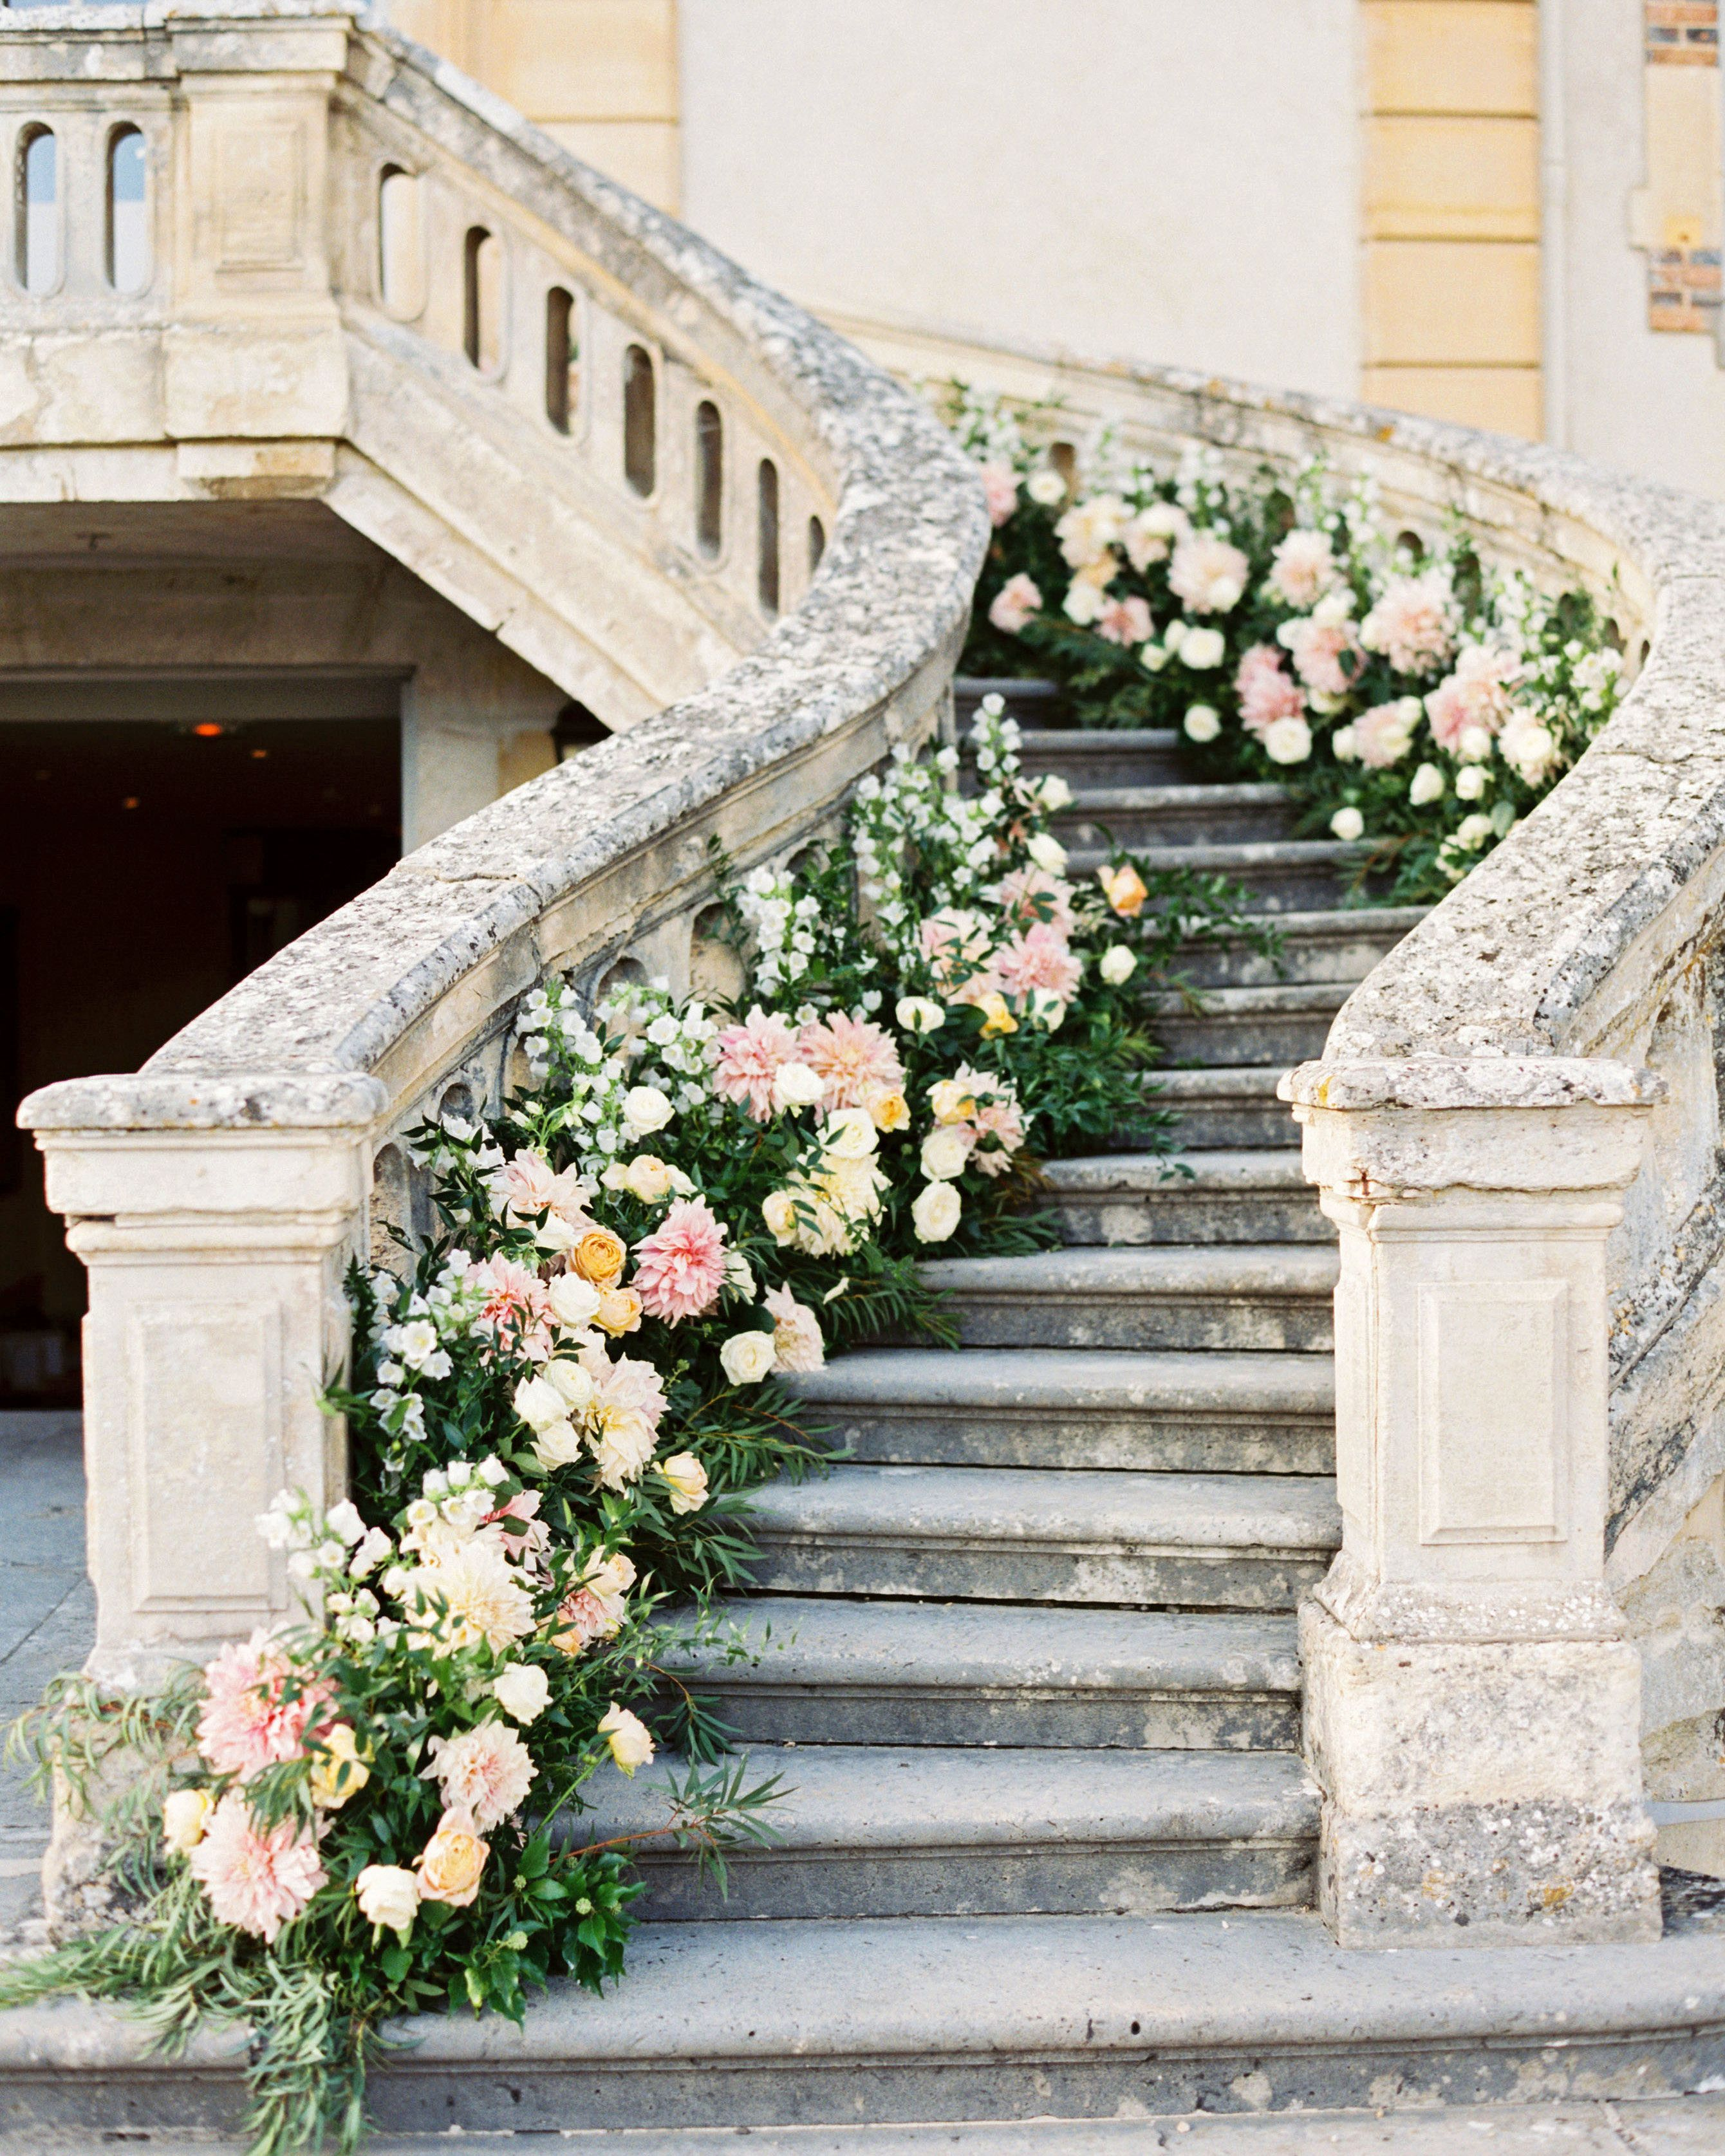 Wedding Ceremony And Reception Edmonton: 20 Summer Wedding Ceremony Ideas You And Your Guests Can